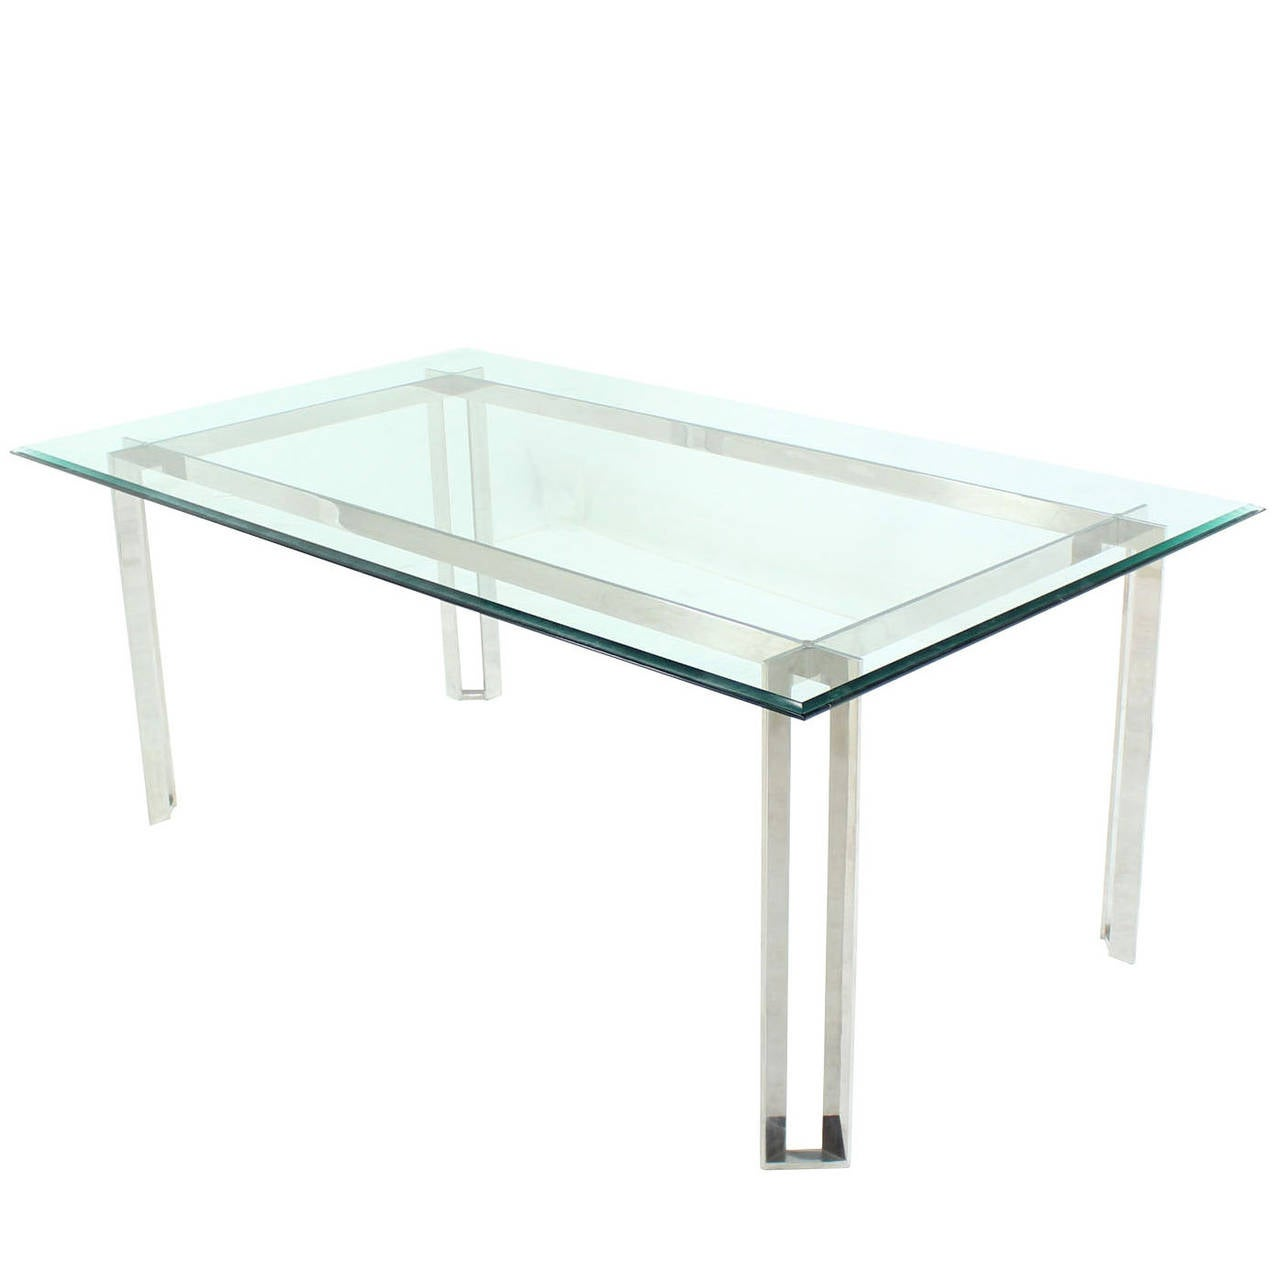 Polished Stainless Steel And Thick Glass Top Dining Room Table 1